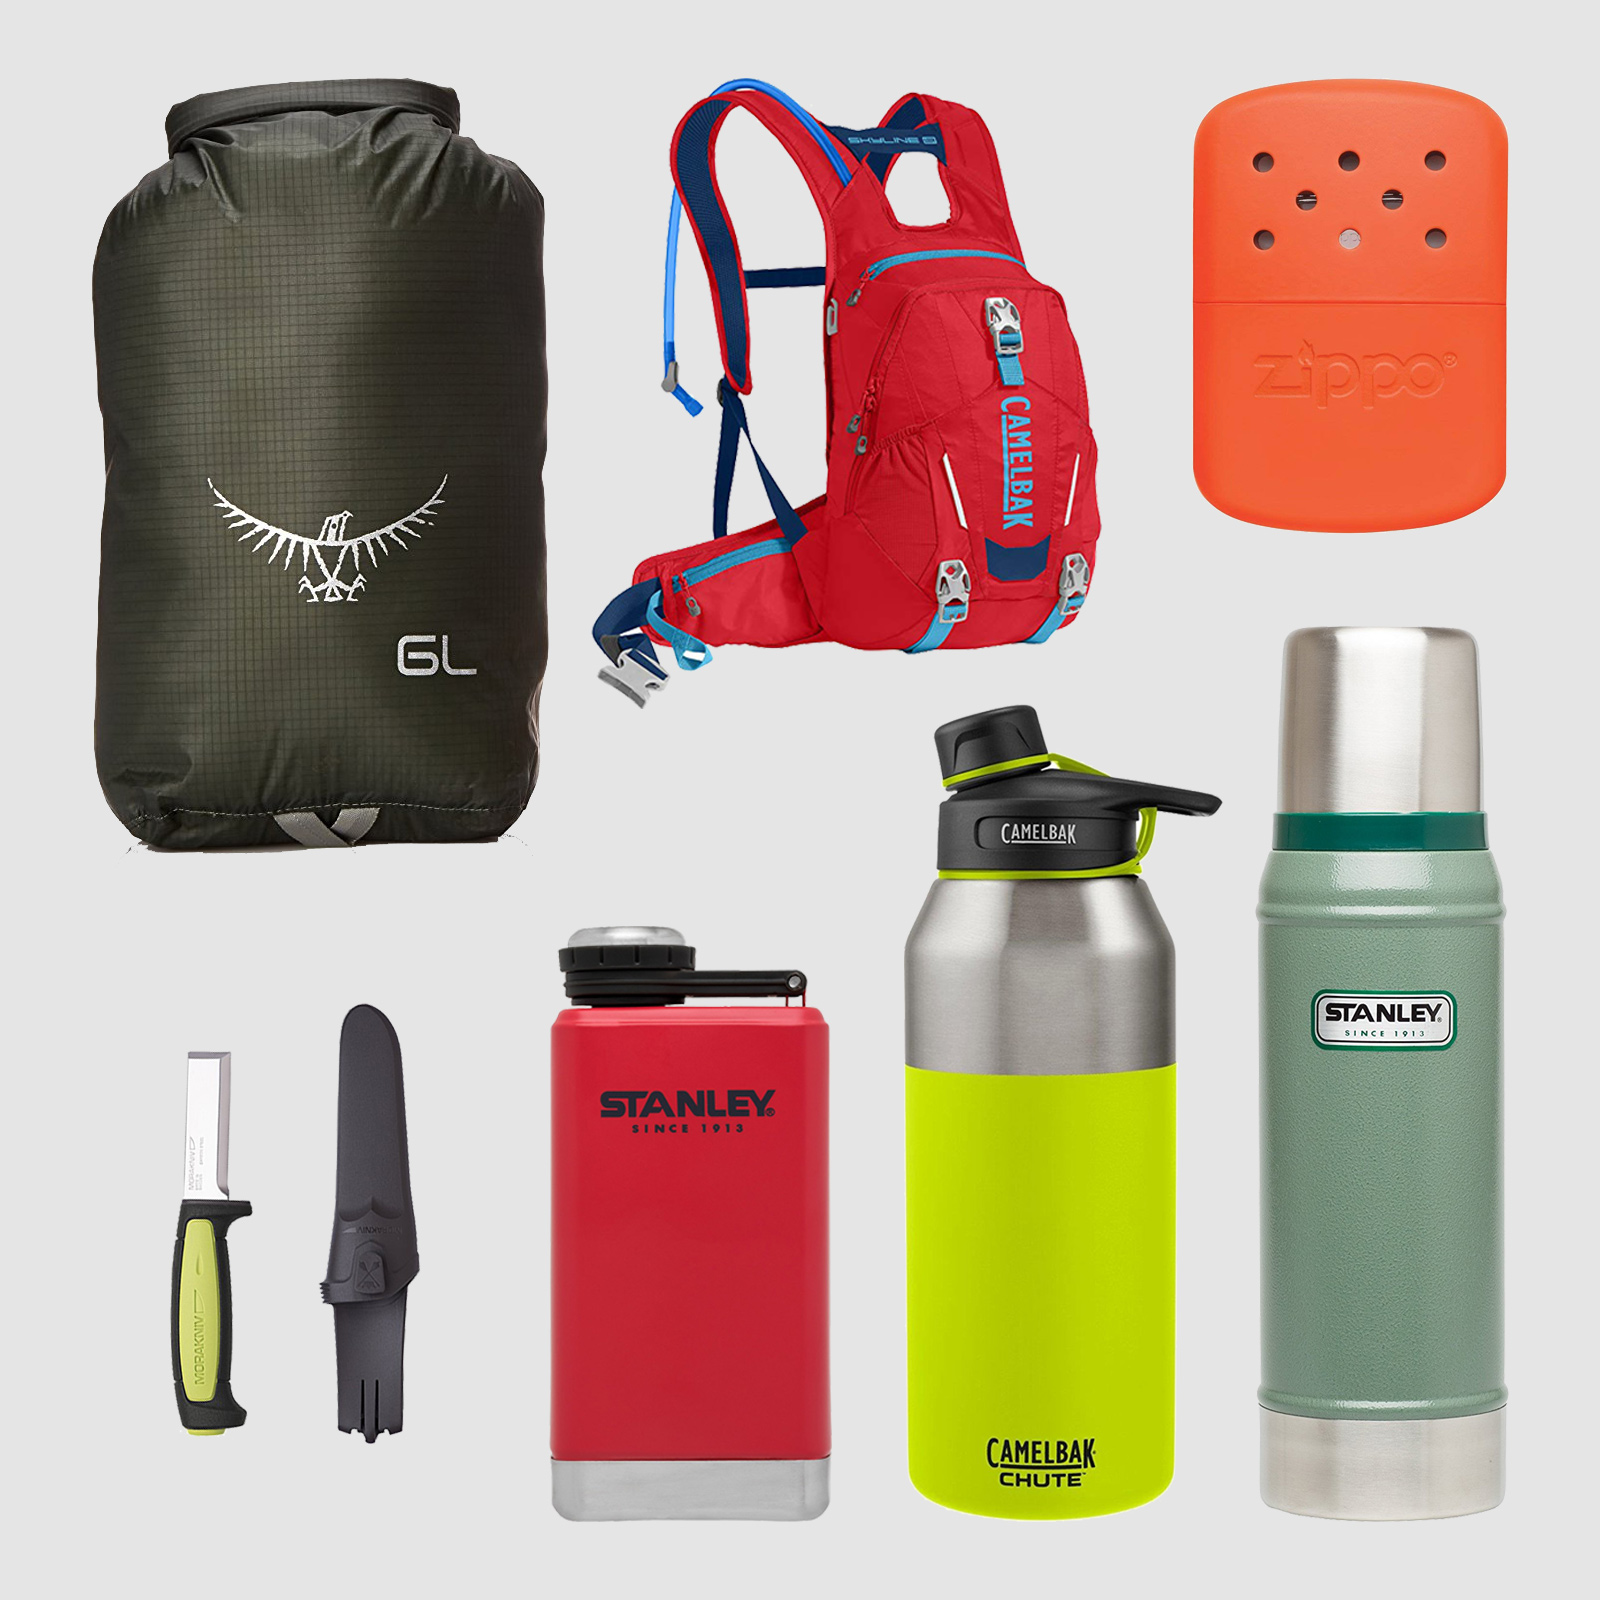 30% off Camping Gear | Amazon